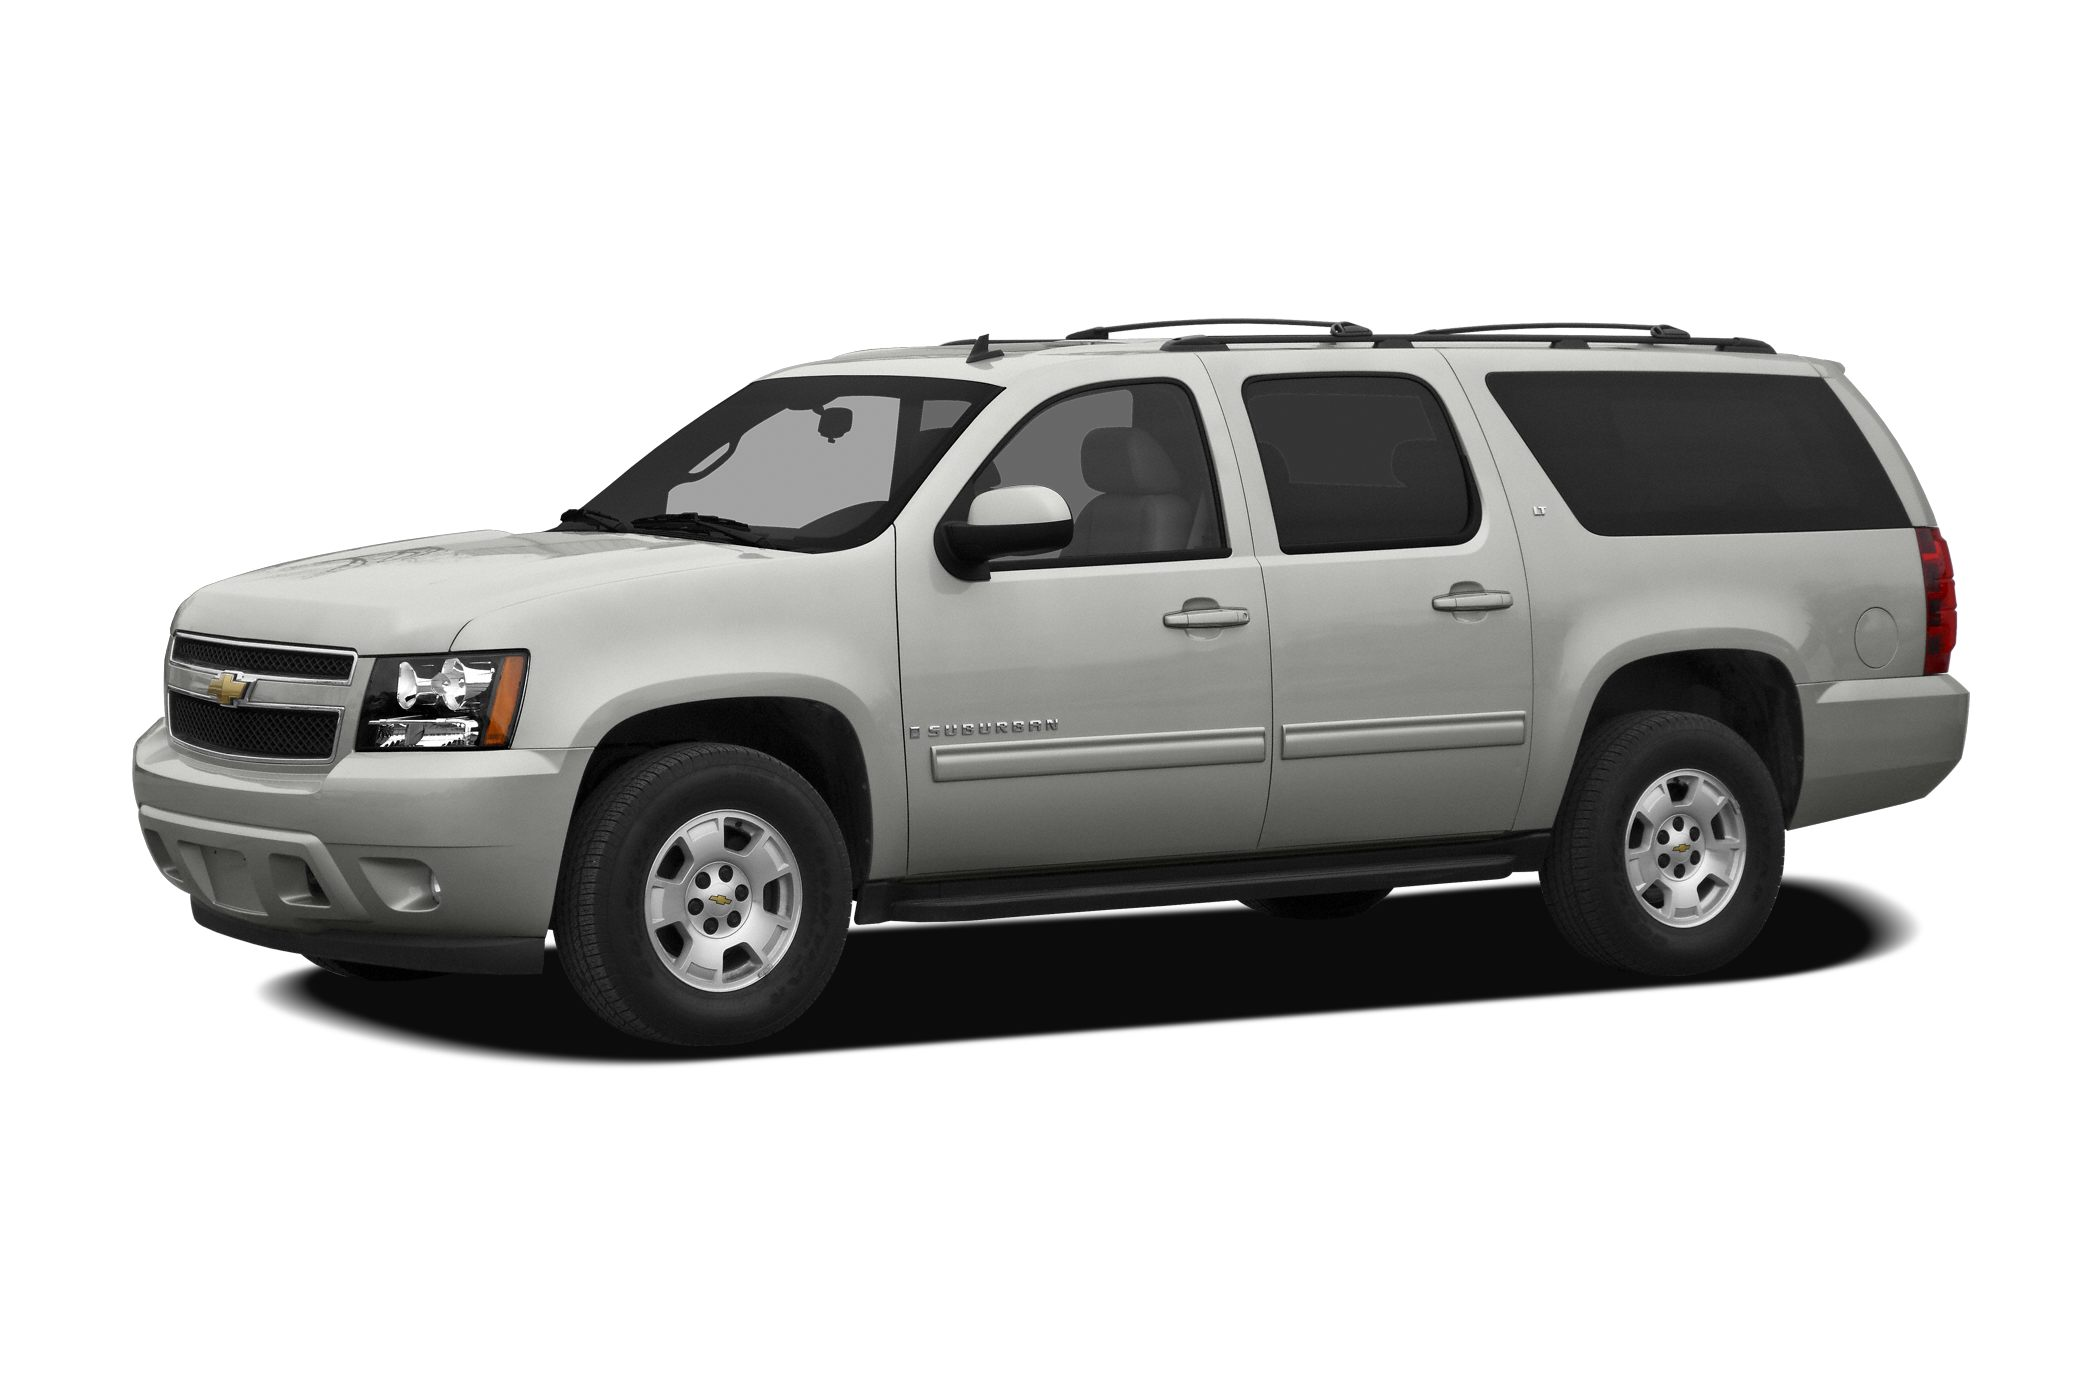 2012 Chevrolet Suburban 1500 LTZ For more information on this vehicleplease contact the Teresa In